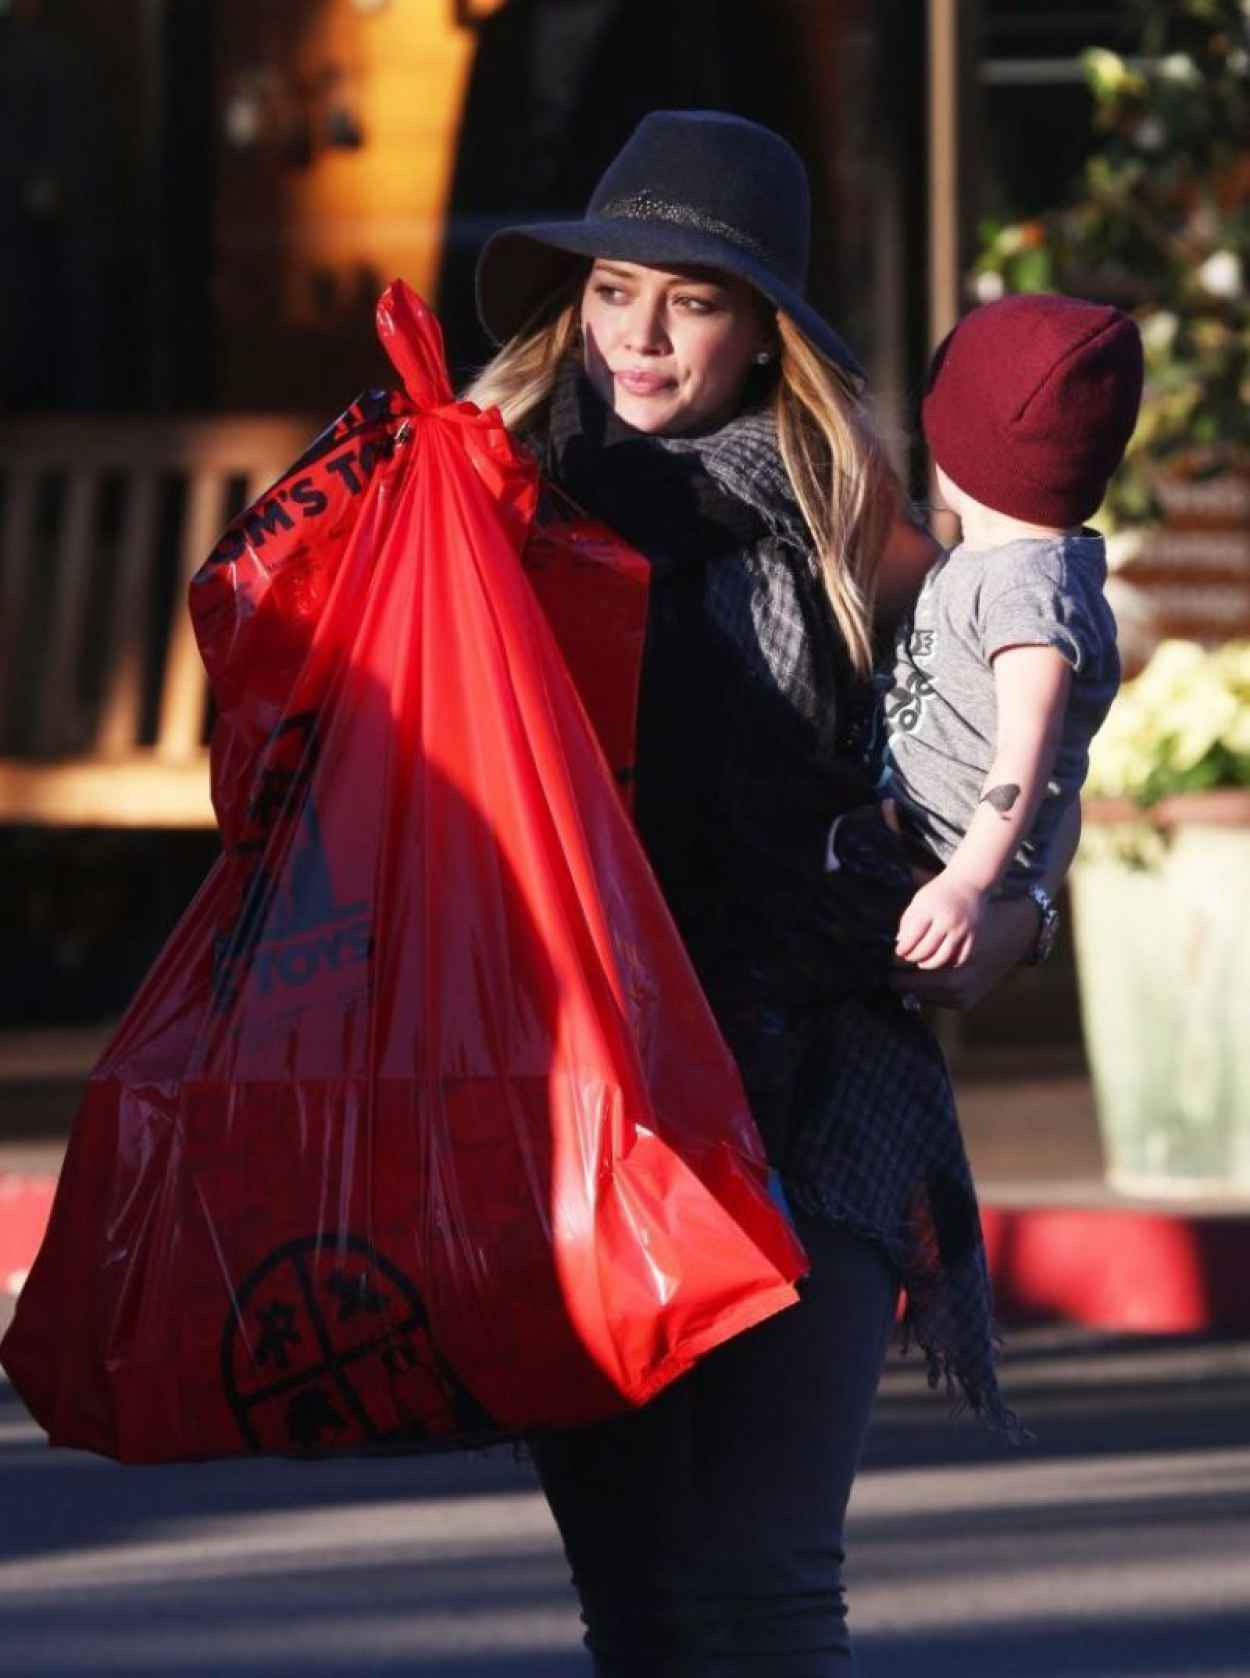 Hilary Duff Street Style - Out in Bel Air - December 2015-1